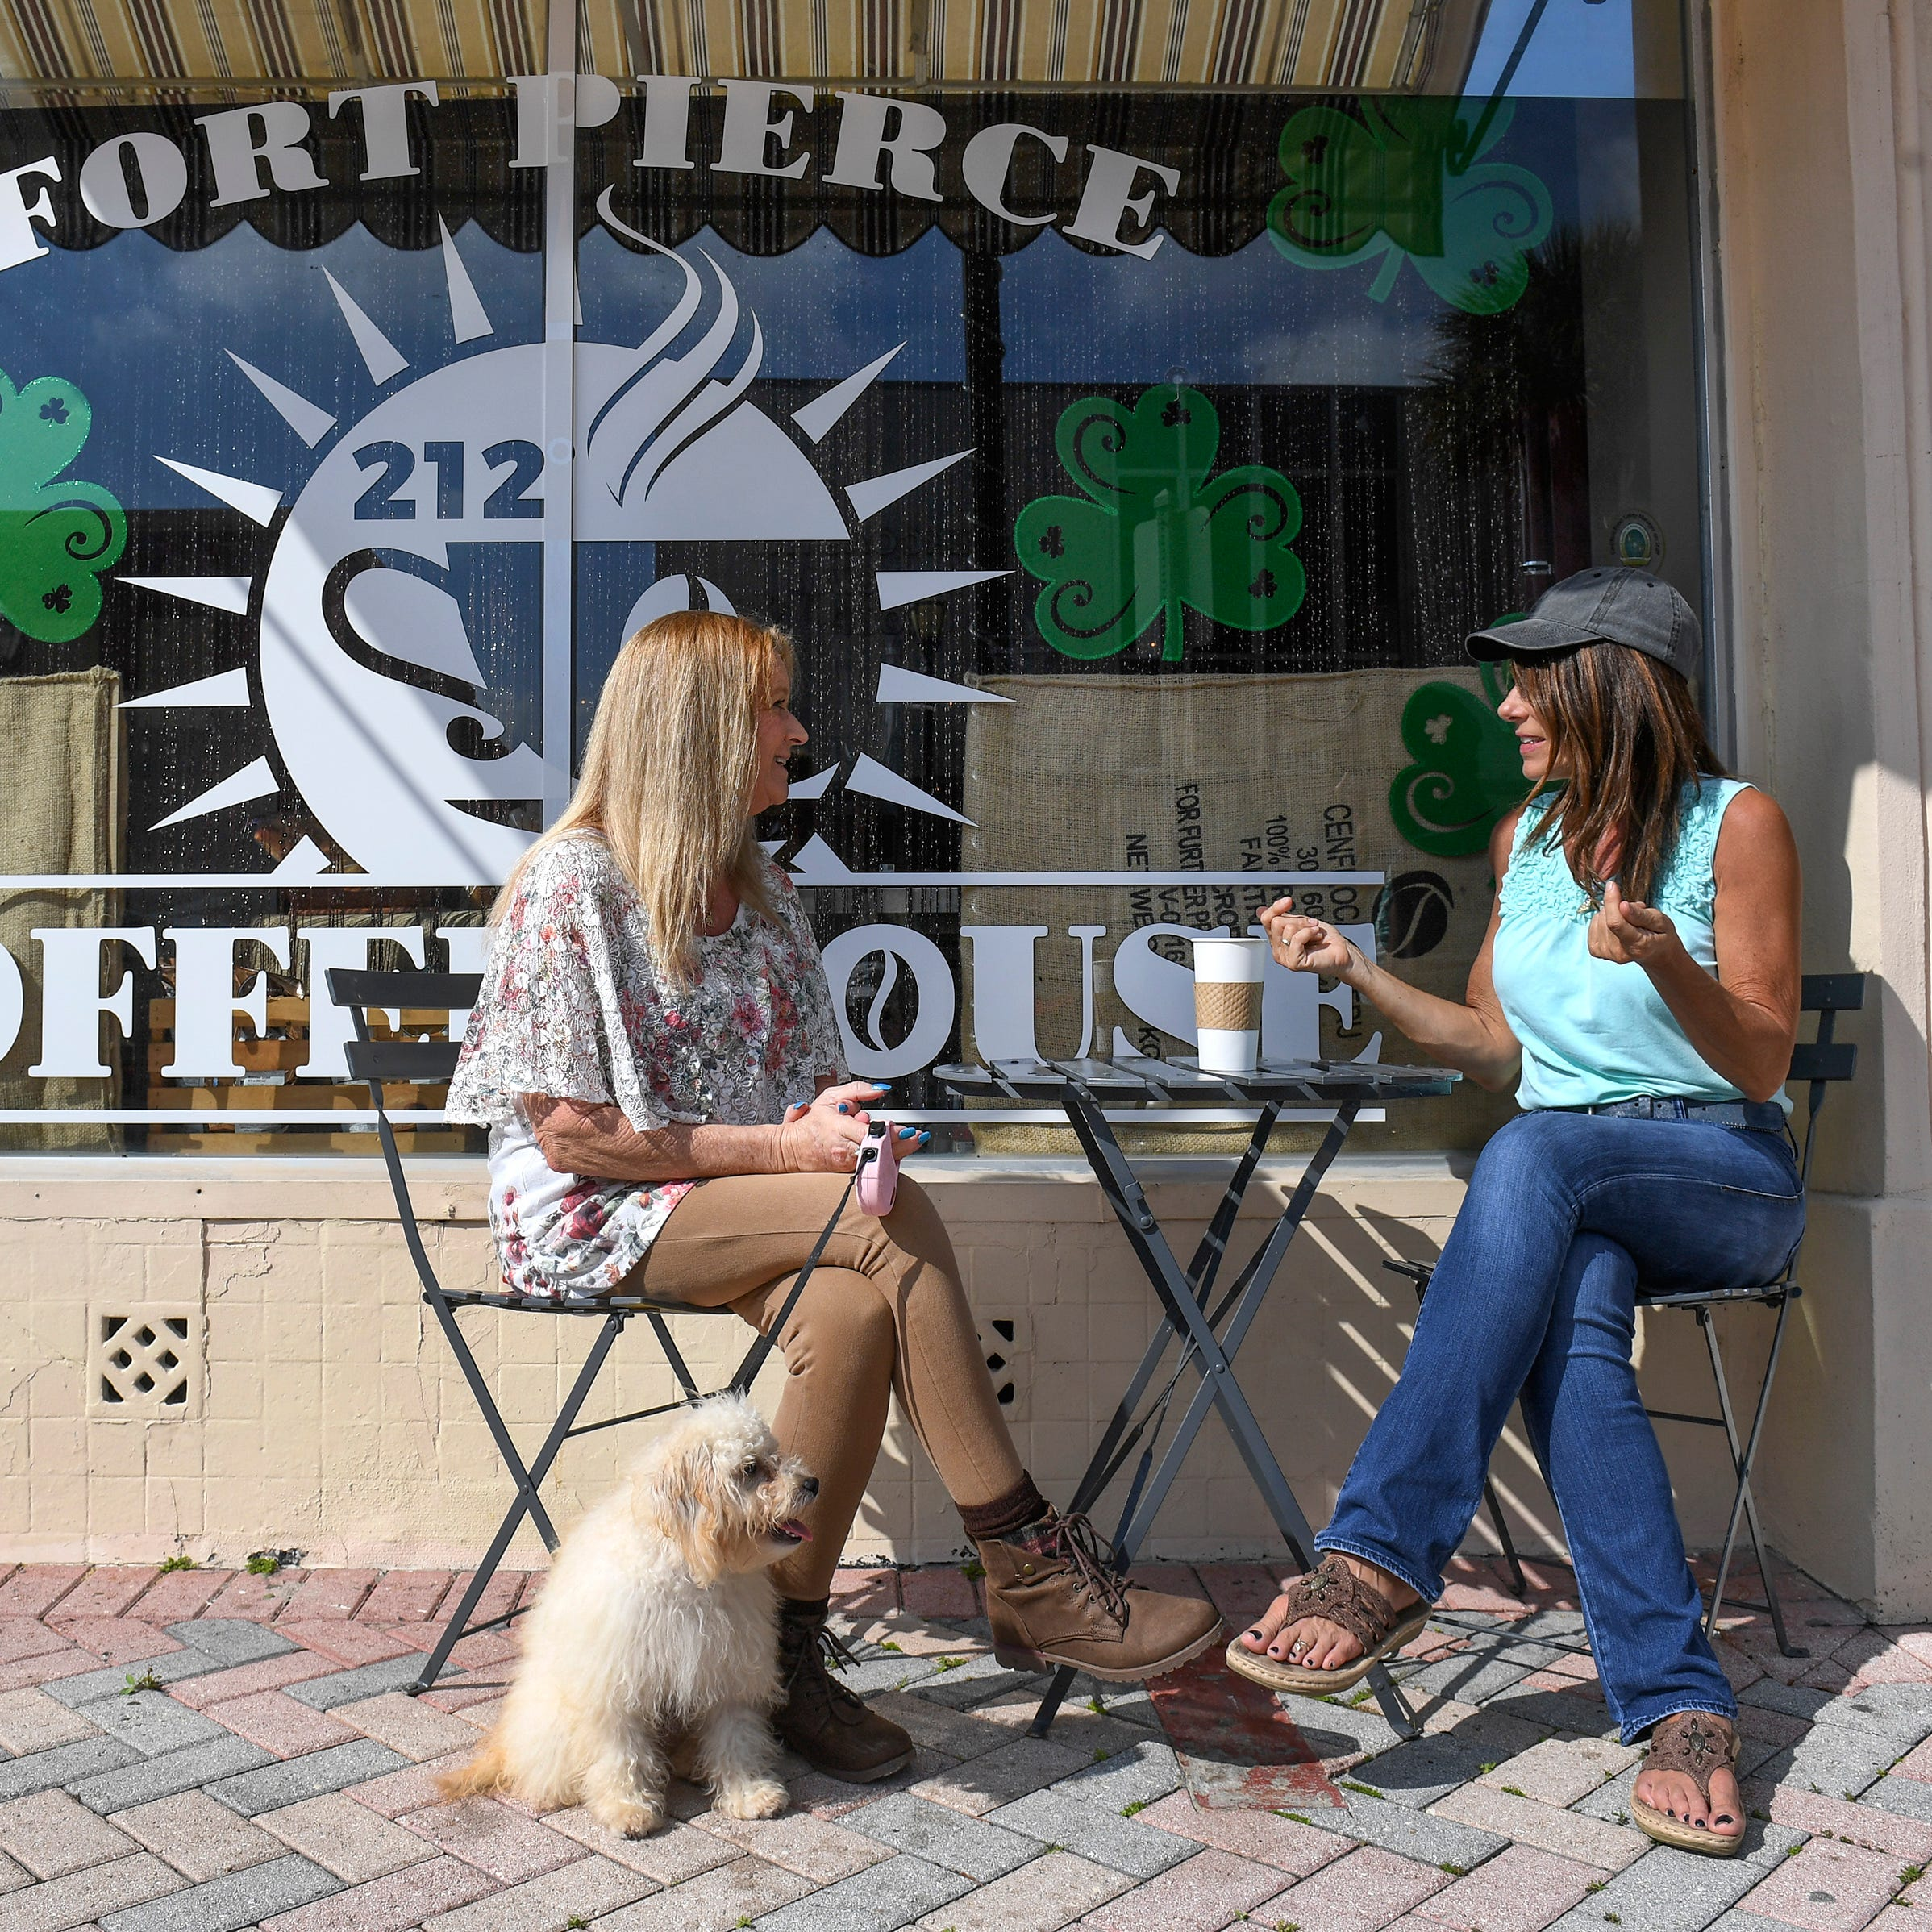 Cancer survivor and son open only coffeehouse in downtown Fort Pierce